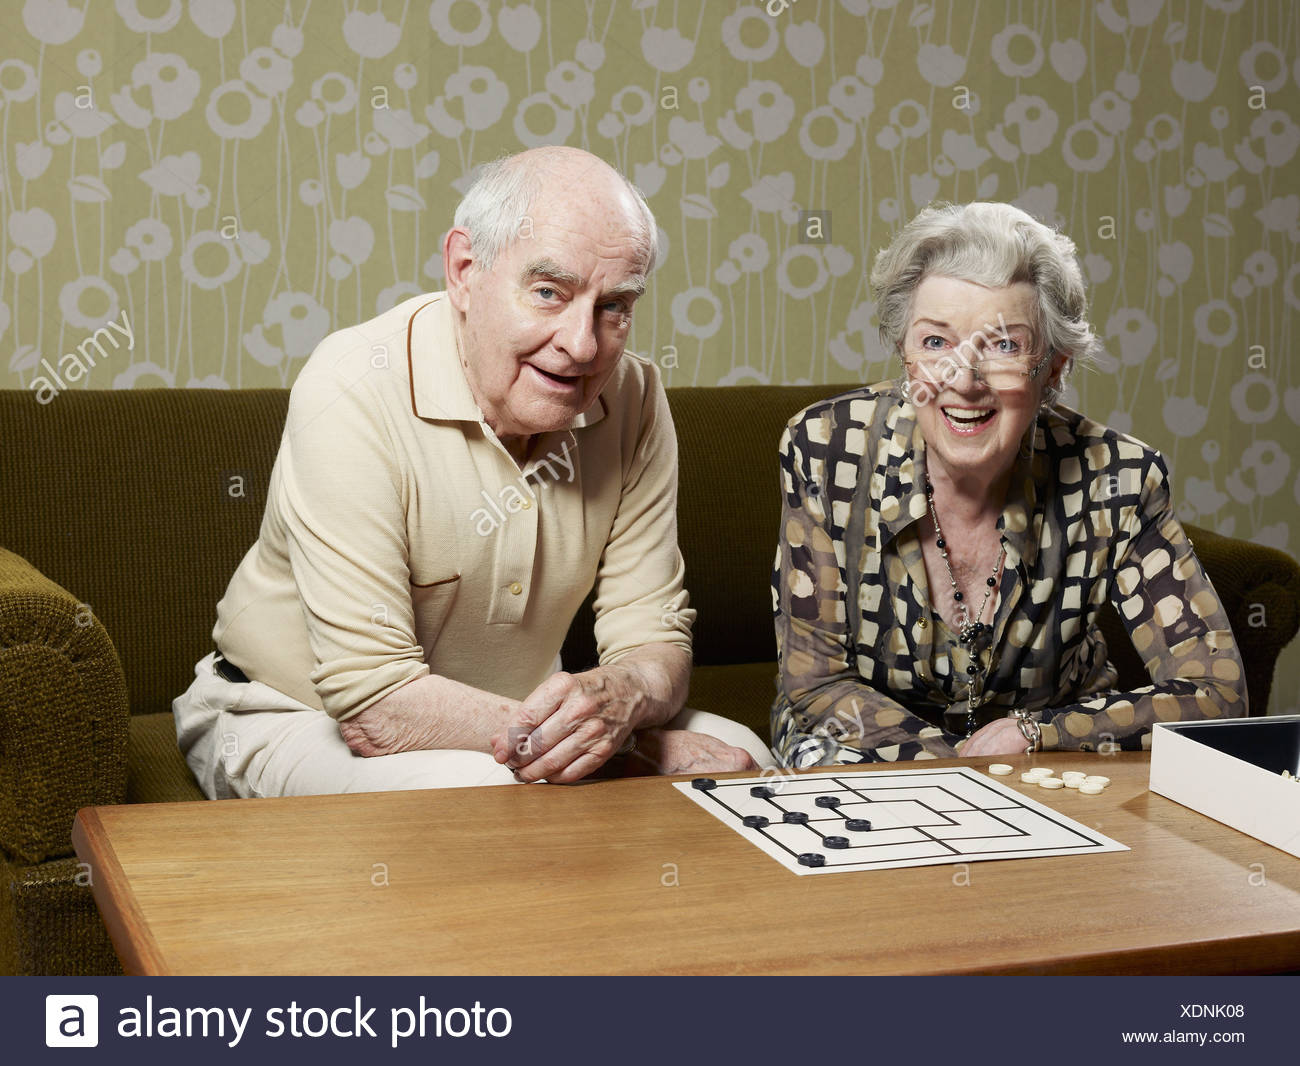 Senior man and woman play muehle on couch - Stock Image